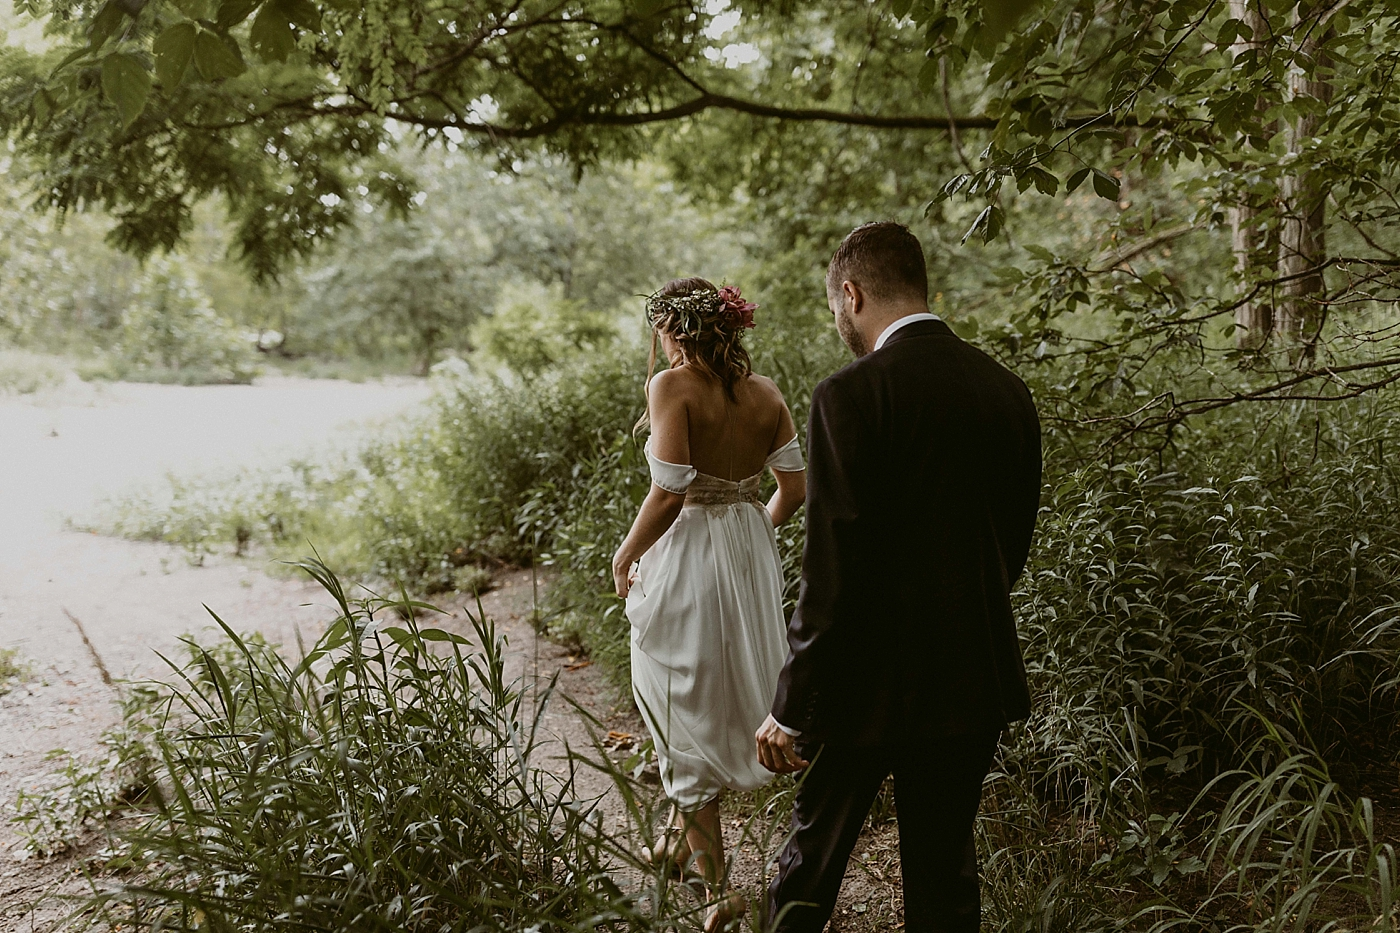 Woodland-Theater-Wedding-Molly+Ryan_MJPHOTO-175.jpg